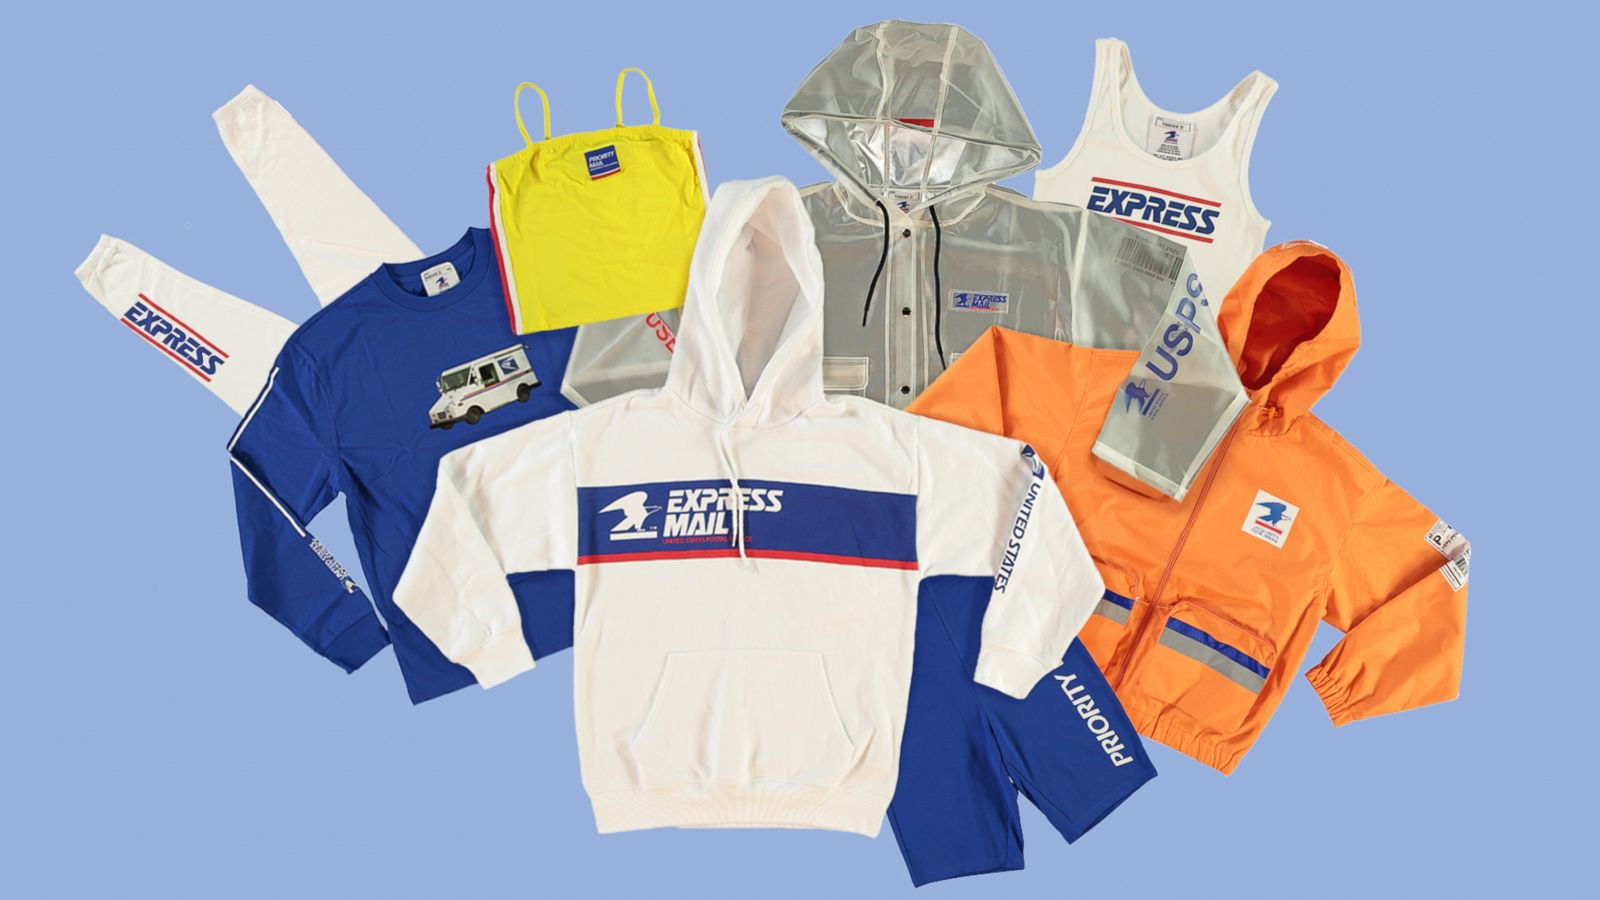 This Forever 21 X Usps Collaboration Has Us Wanting To Ship Ourselves Around The Country Gma